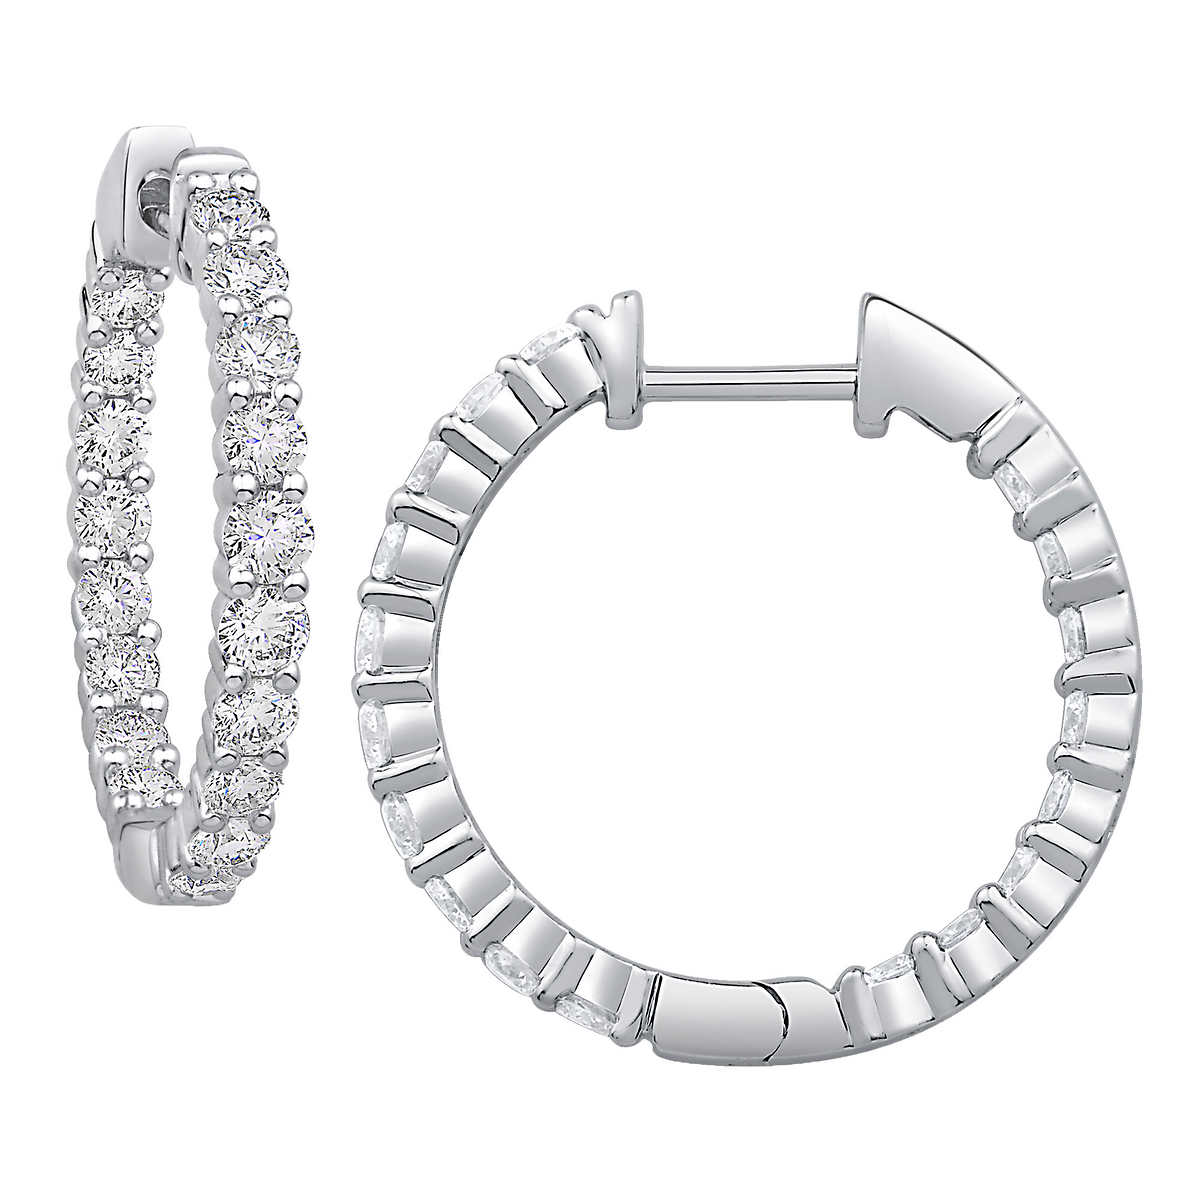 Round Brilliant 150 Ctw Vs2 Clarity, I Color Diamond 14kt White Gold  Inside Outside Hoop